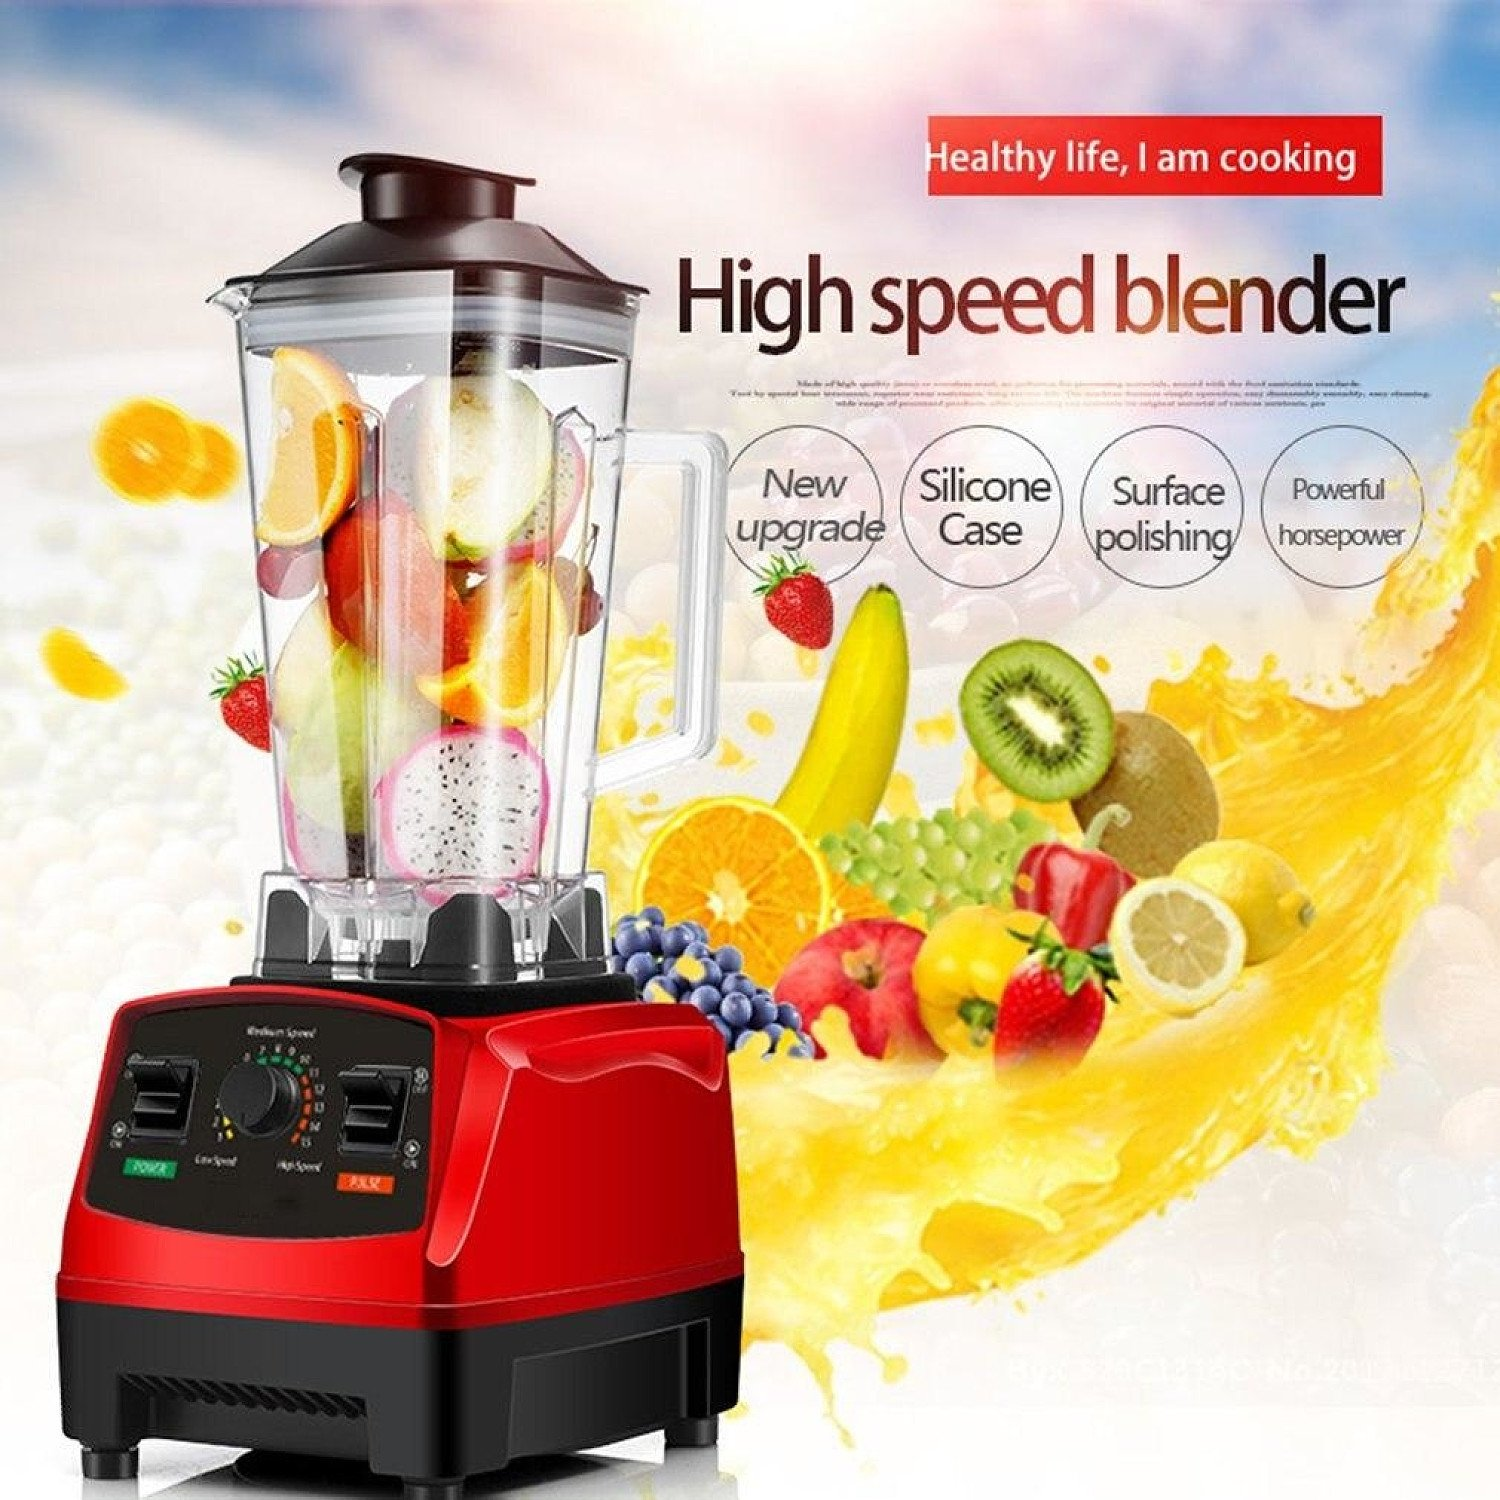 2200 W High Speed Blender Mixer with 8 Blade Fruit Juicer Food Processor Ice Crusher Smoothie